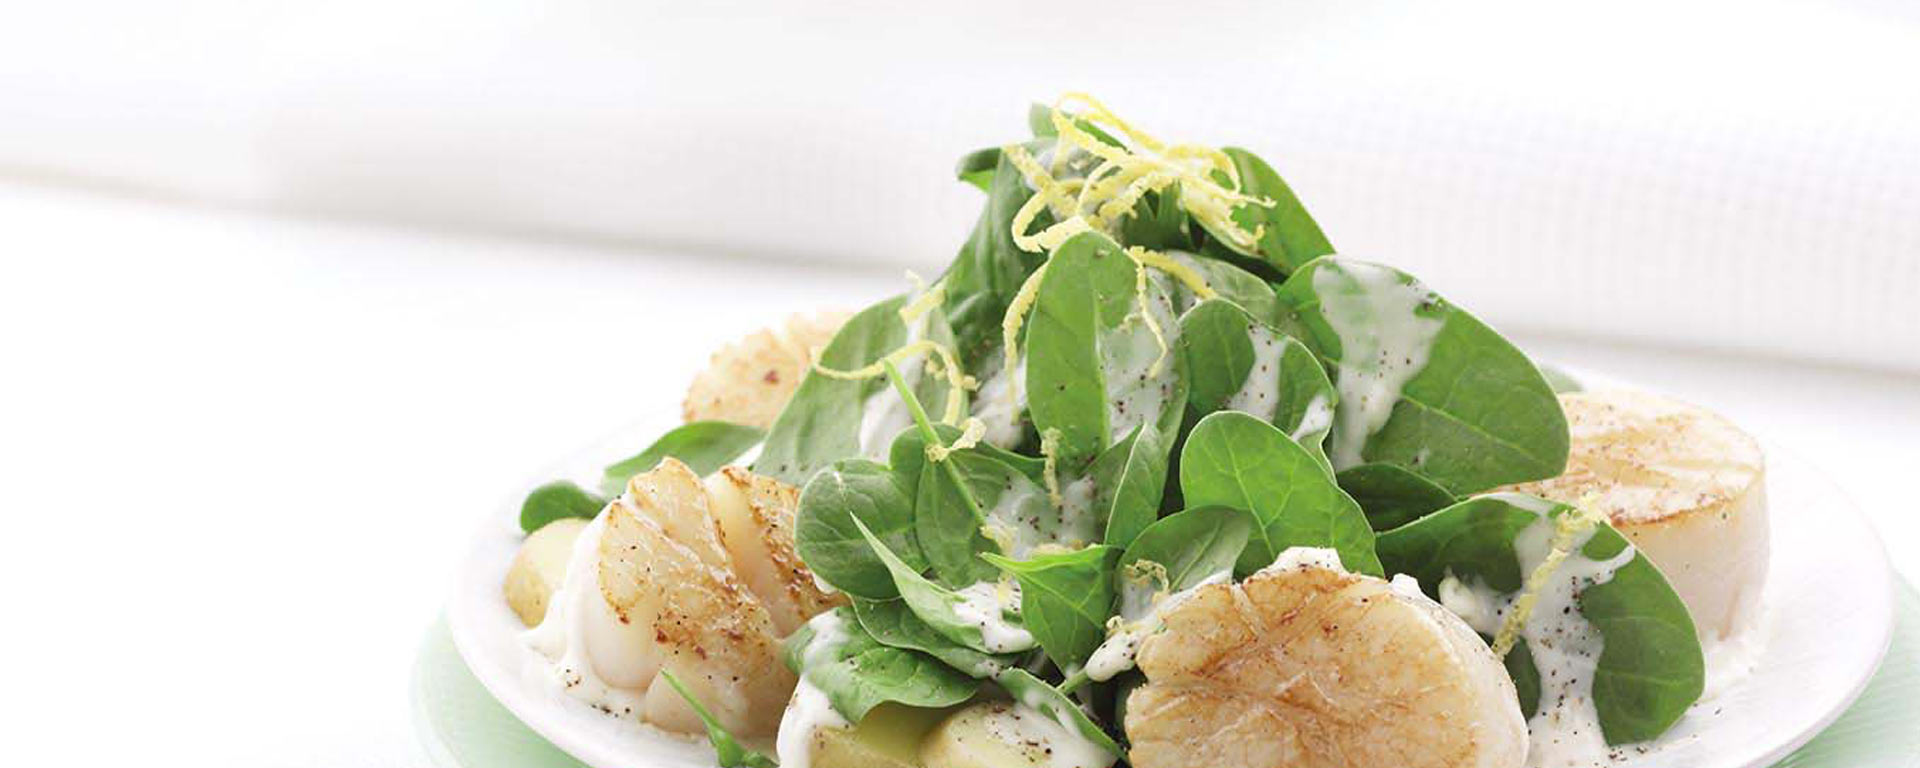 Photo for - Seared Scallops with Baby Spinach and Potatoes